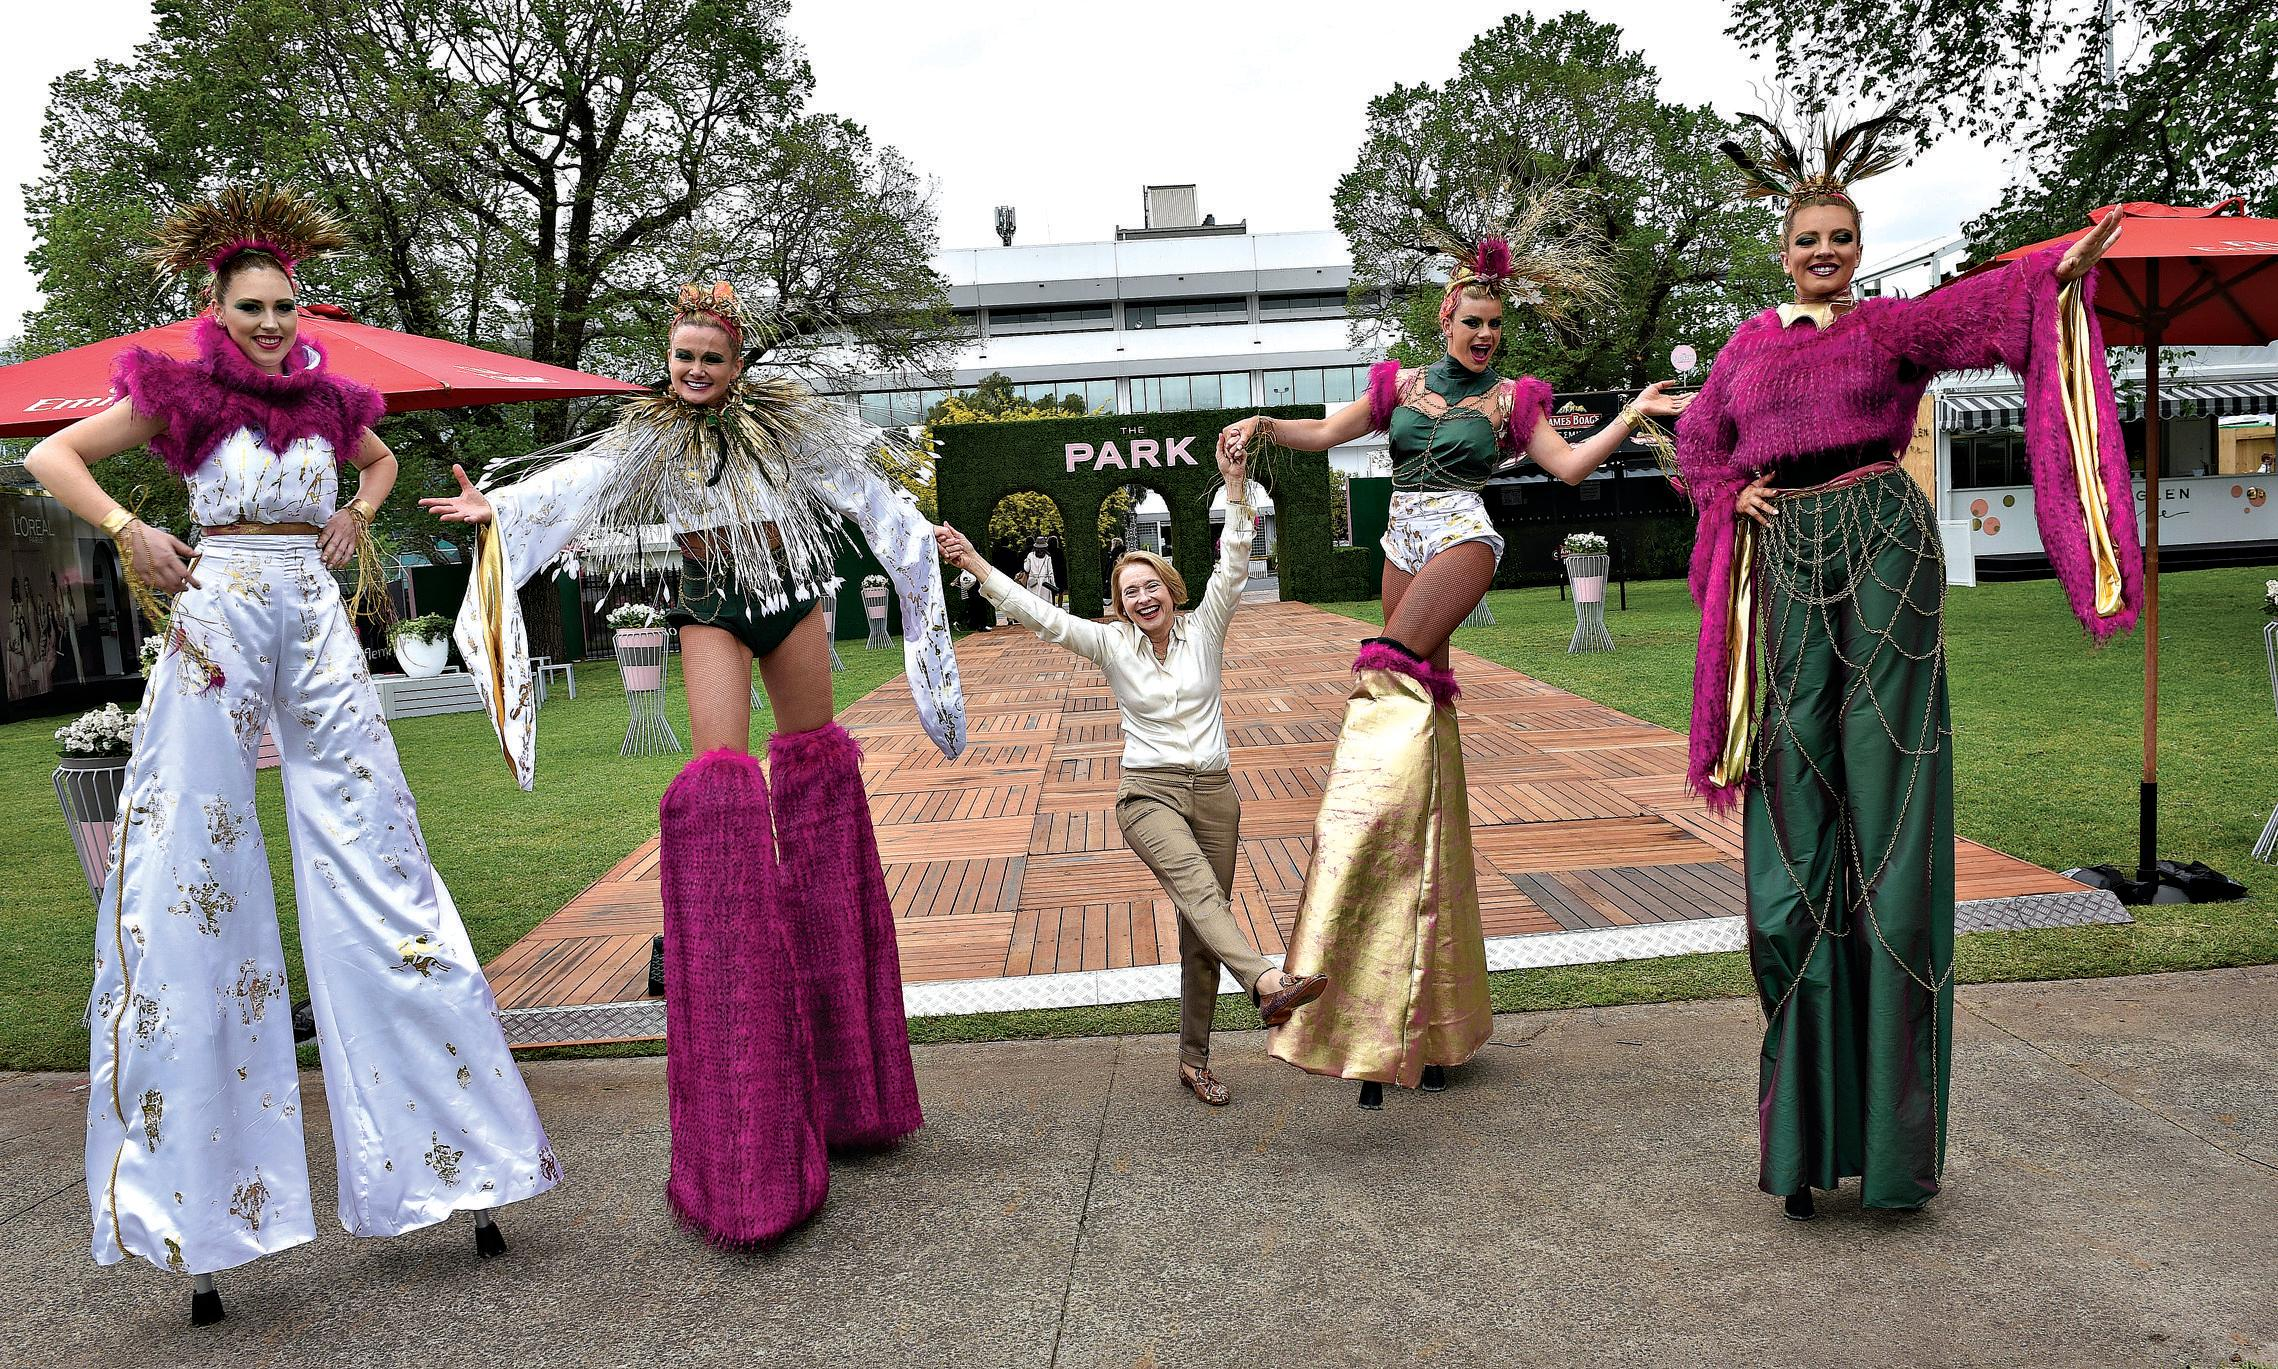 Trainer Gai Waterhouse is seen with performers at the launch of the Melbourne Cup Carnival in the The Park at Flemington racecourse in Melbourne, on October 24.